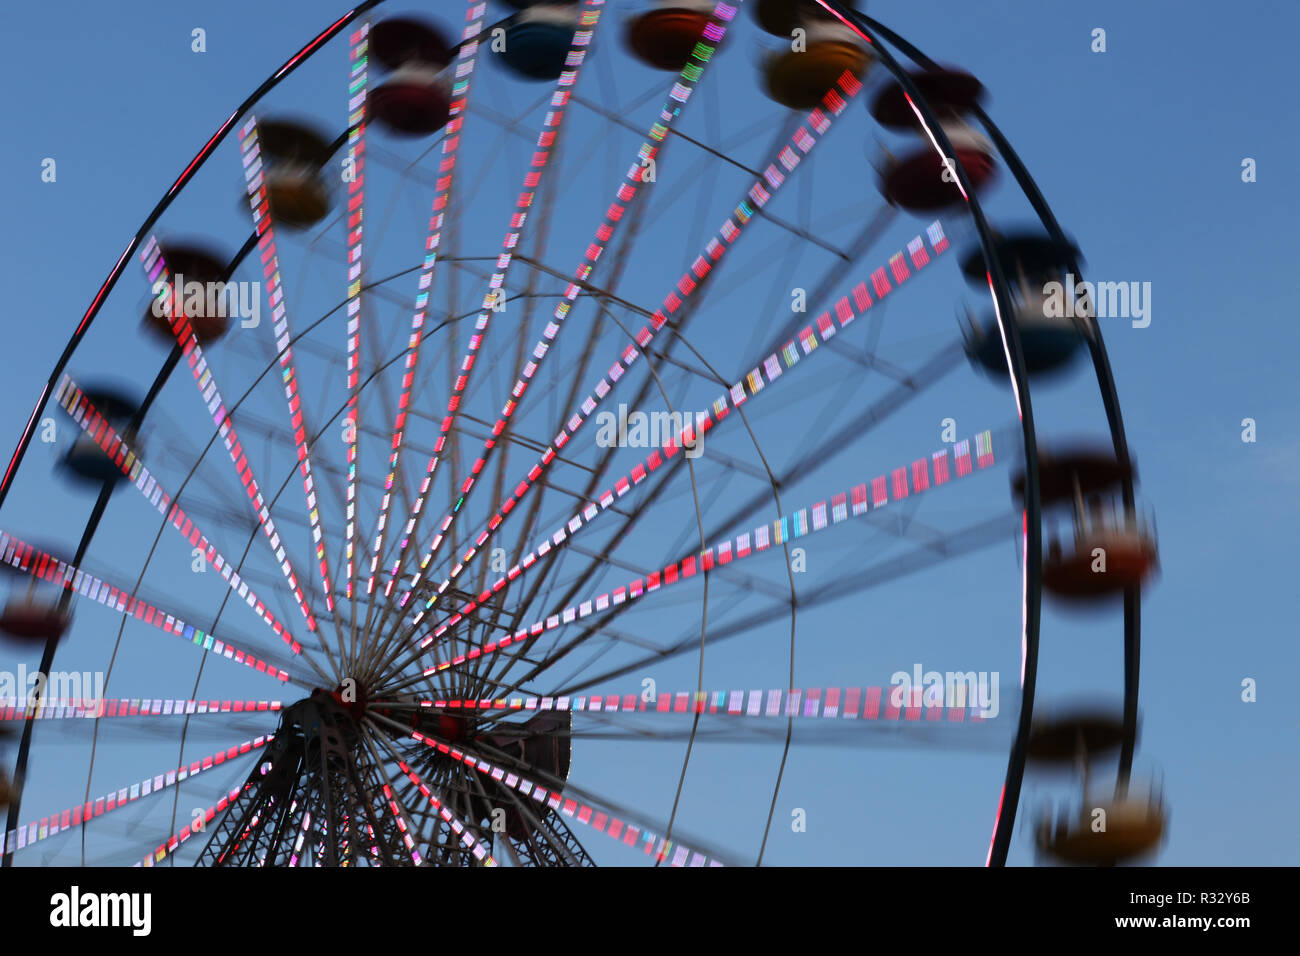 Ferris Wheel carnival ride against blue sky at dusk. Motion blur. Canfield Fair. Mahoning County Fair. Canfield, Youngstown, Ohio, USA. - Stock Image